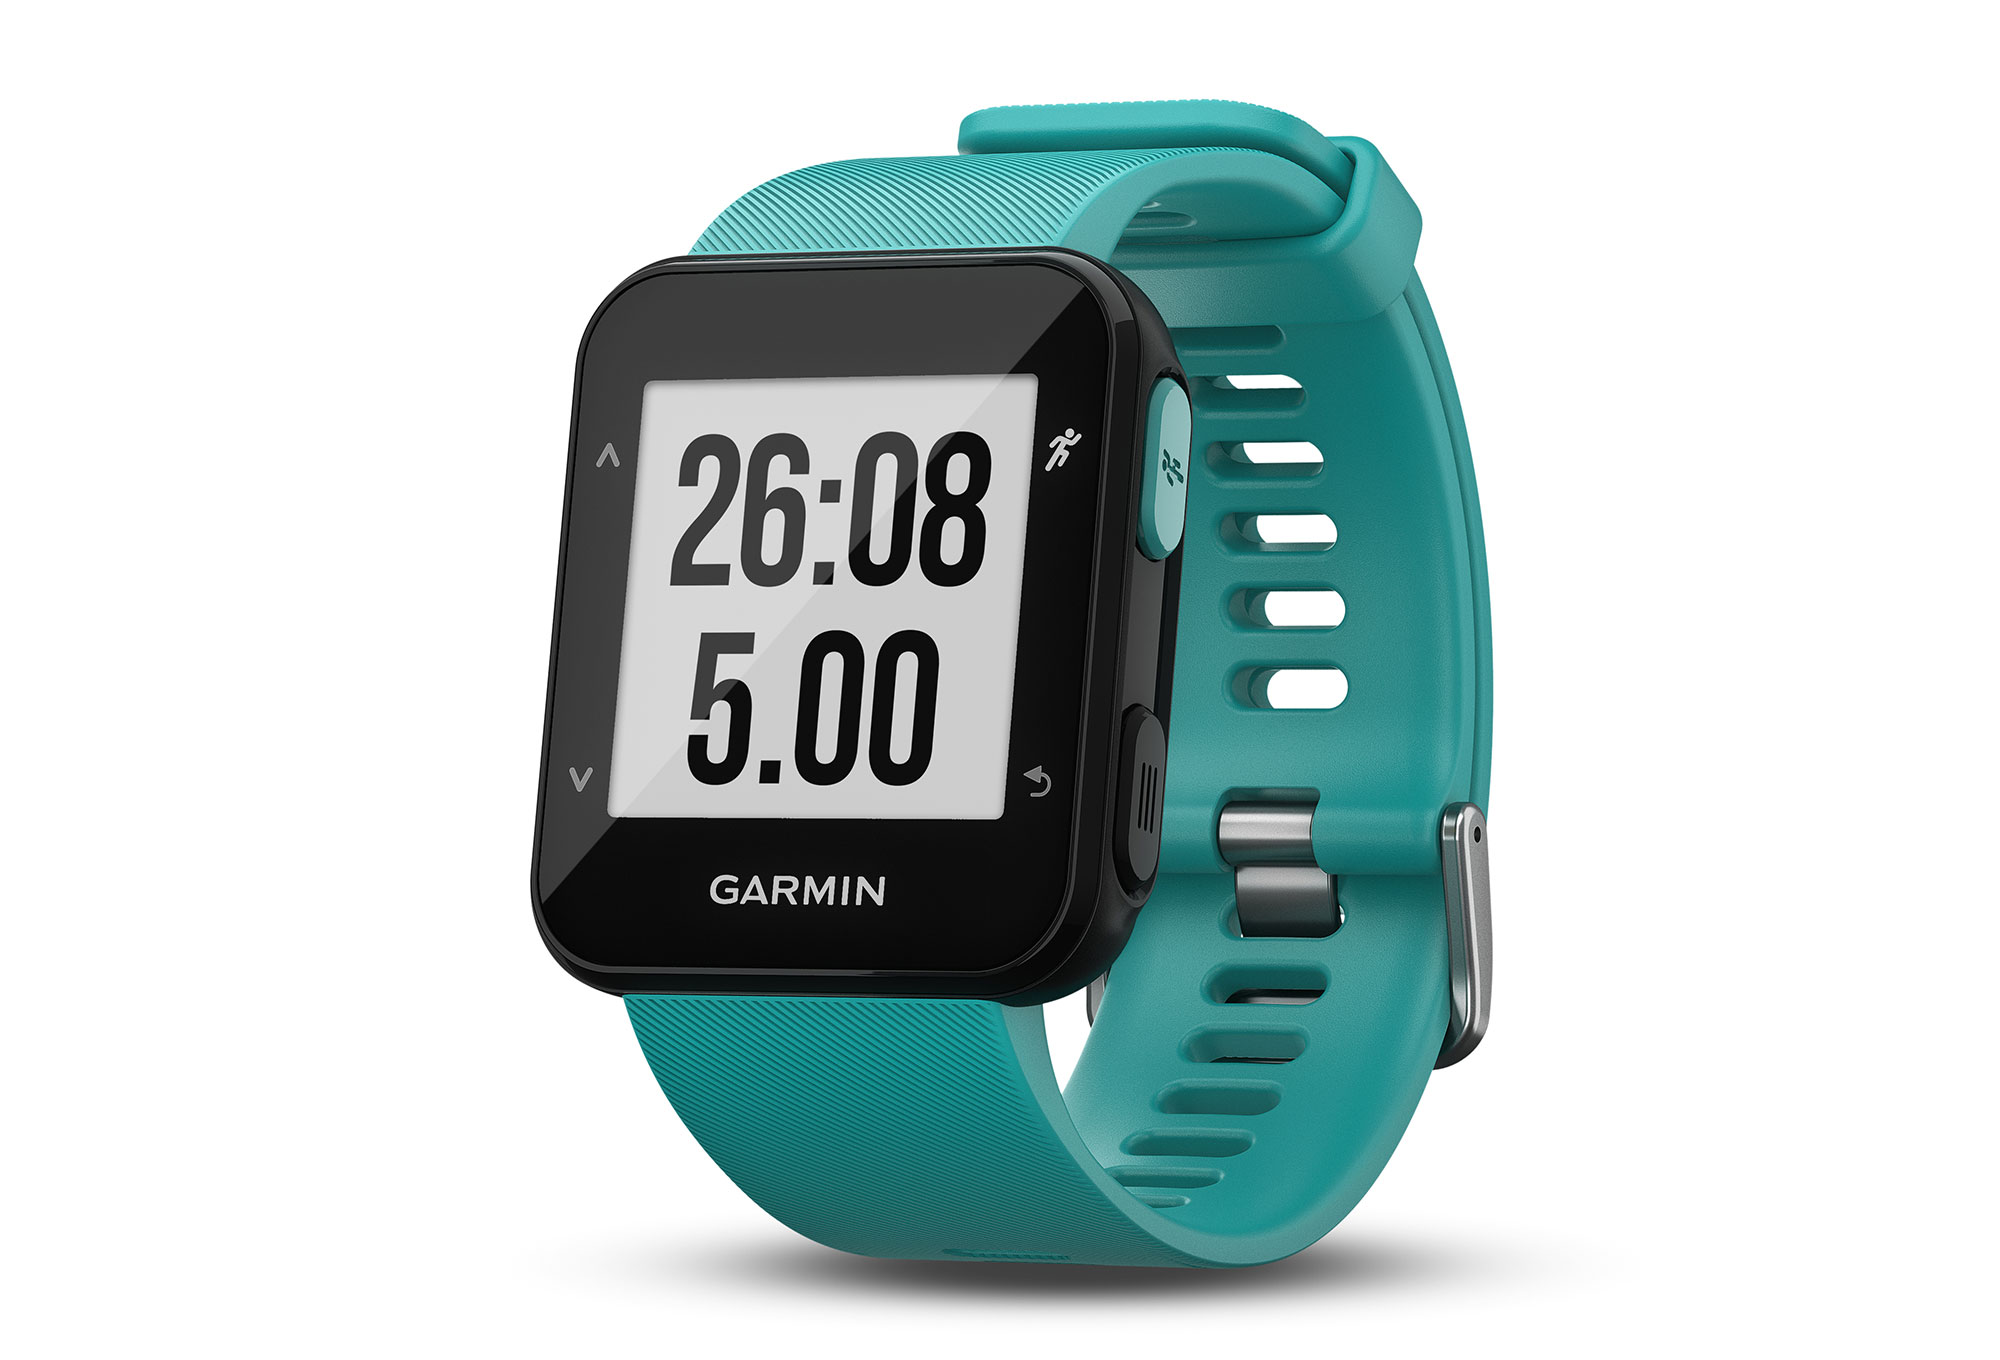 Garmin Forerunner 30 GPS Watch Turquoise Blue | Alltricks.com